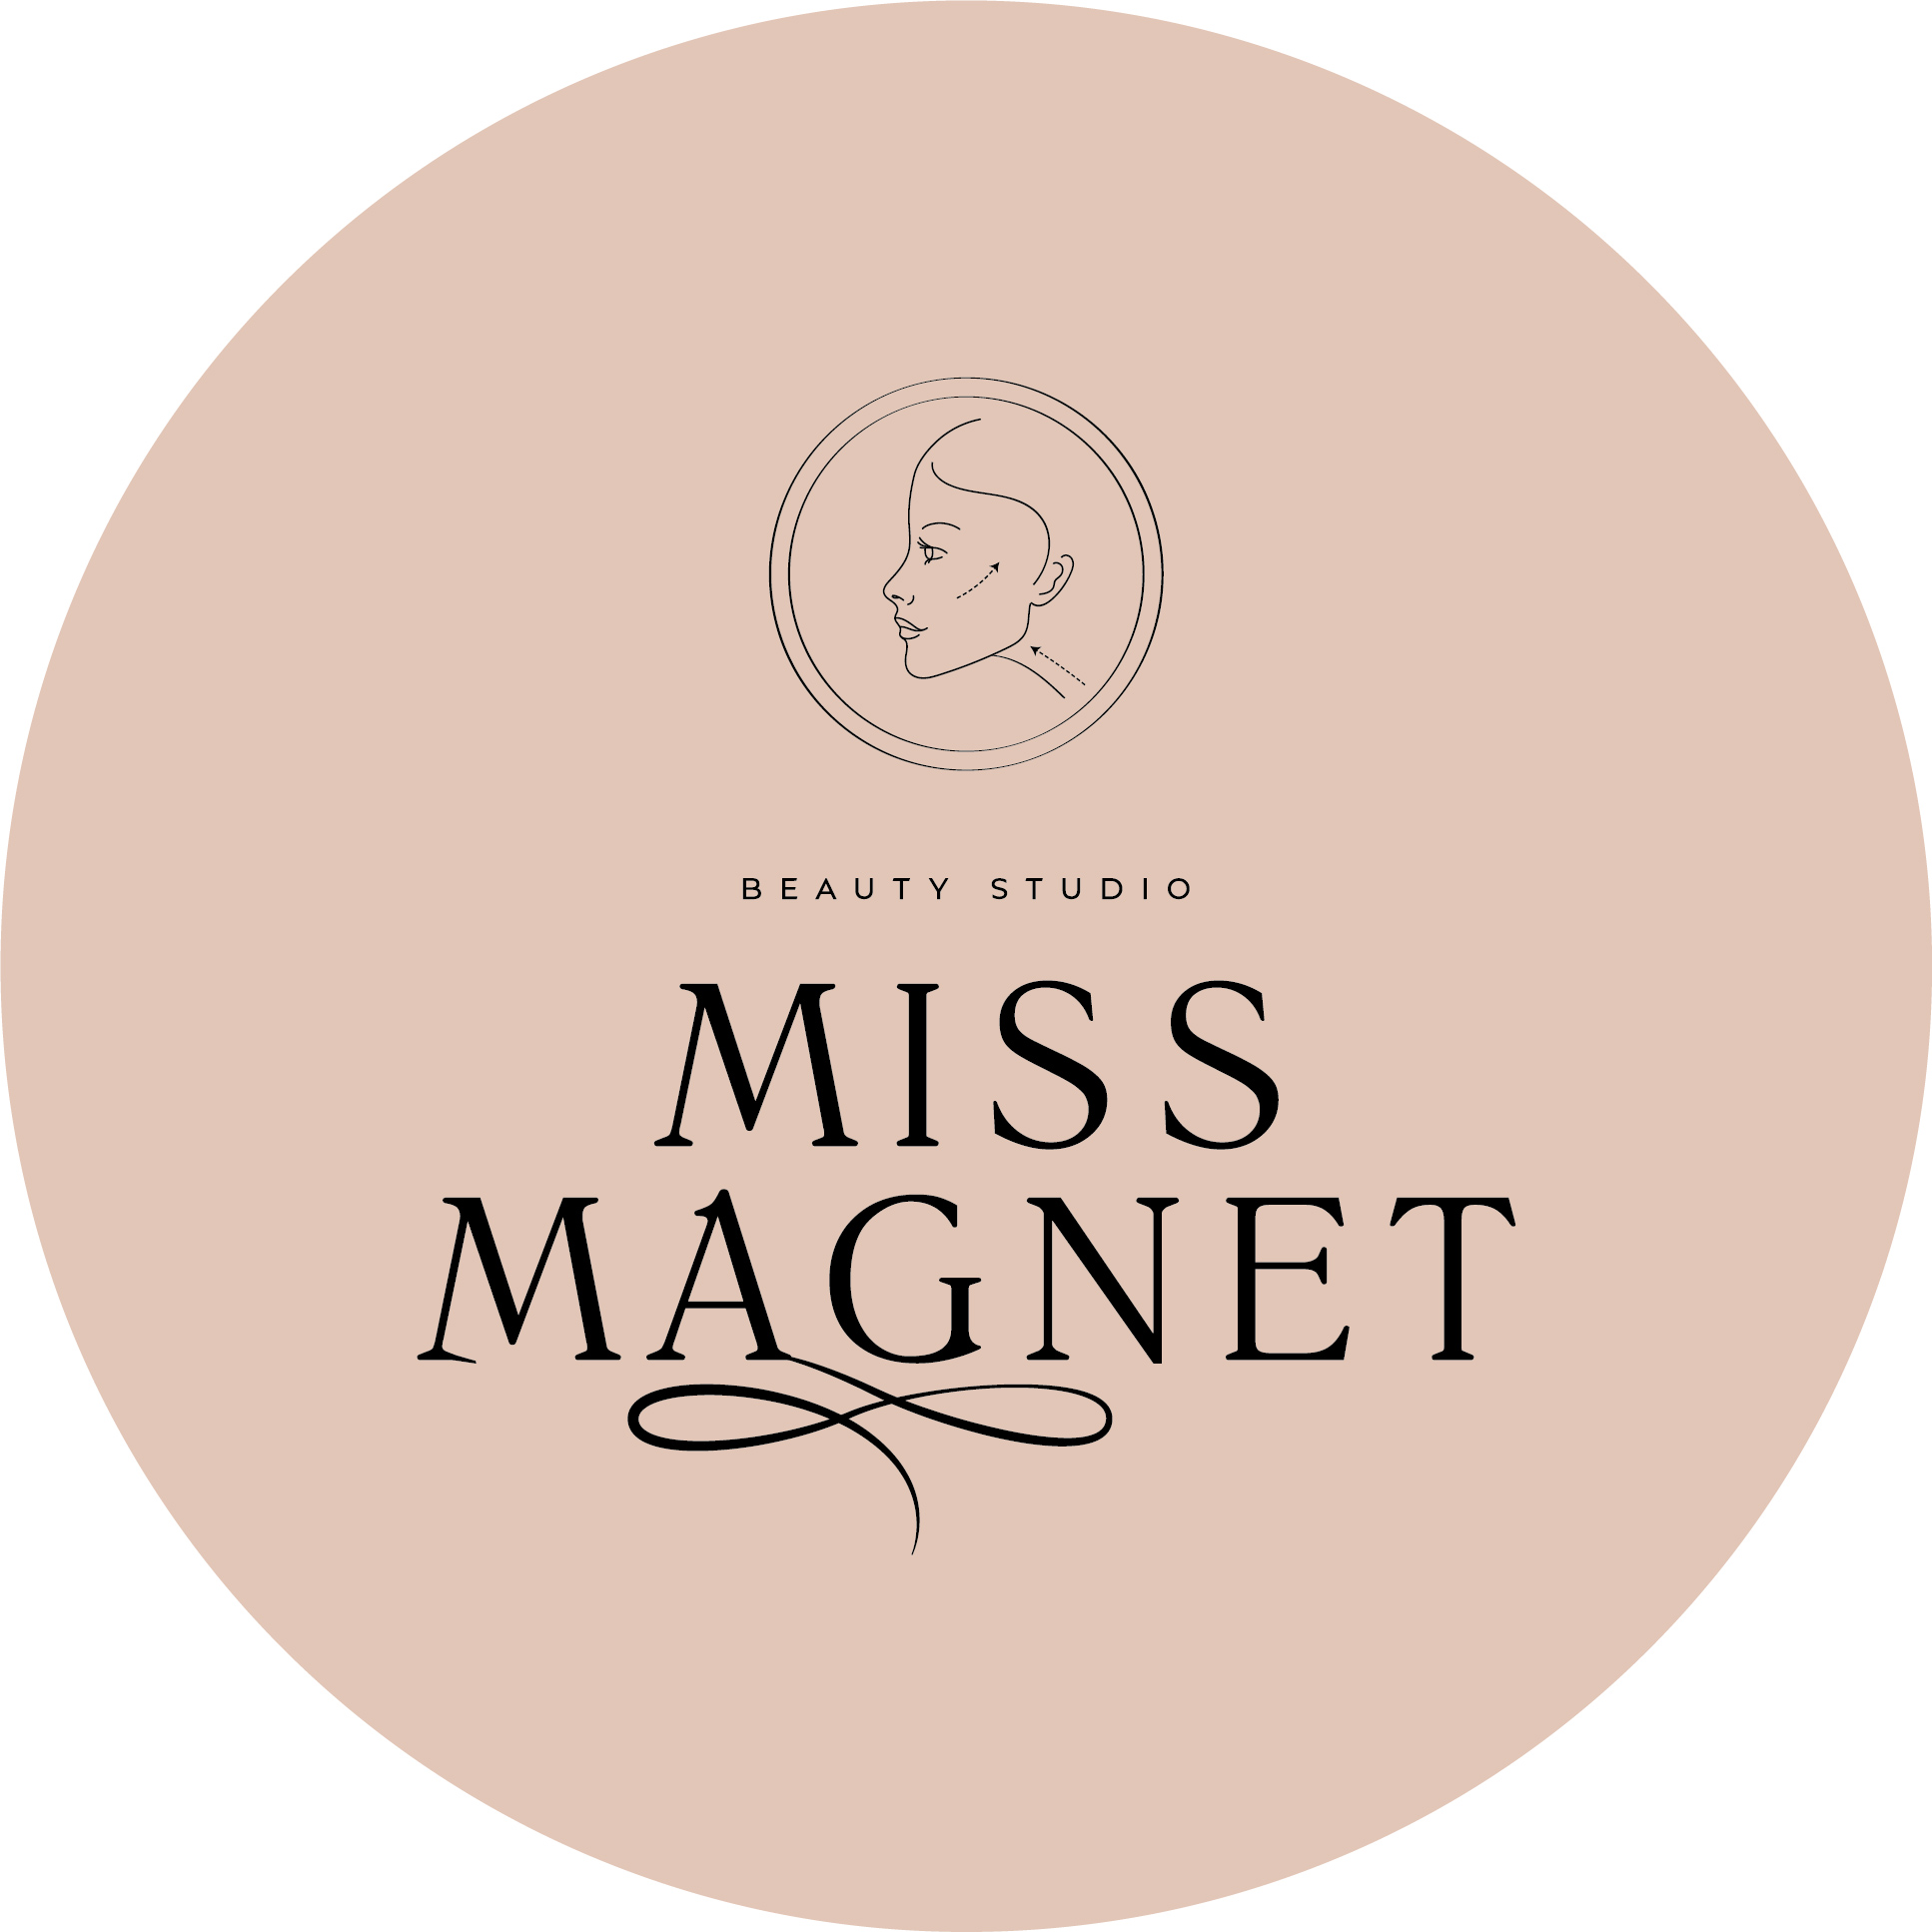 Beauty studio MISS MAGNET